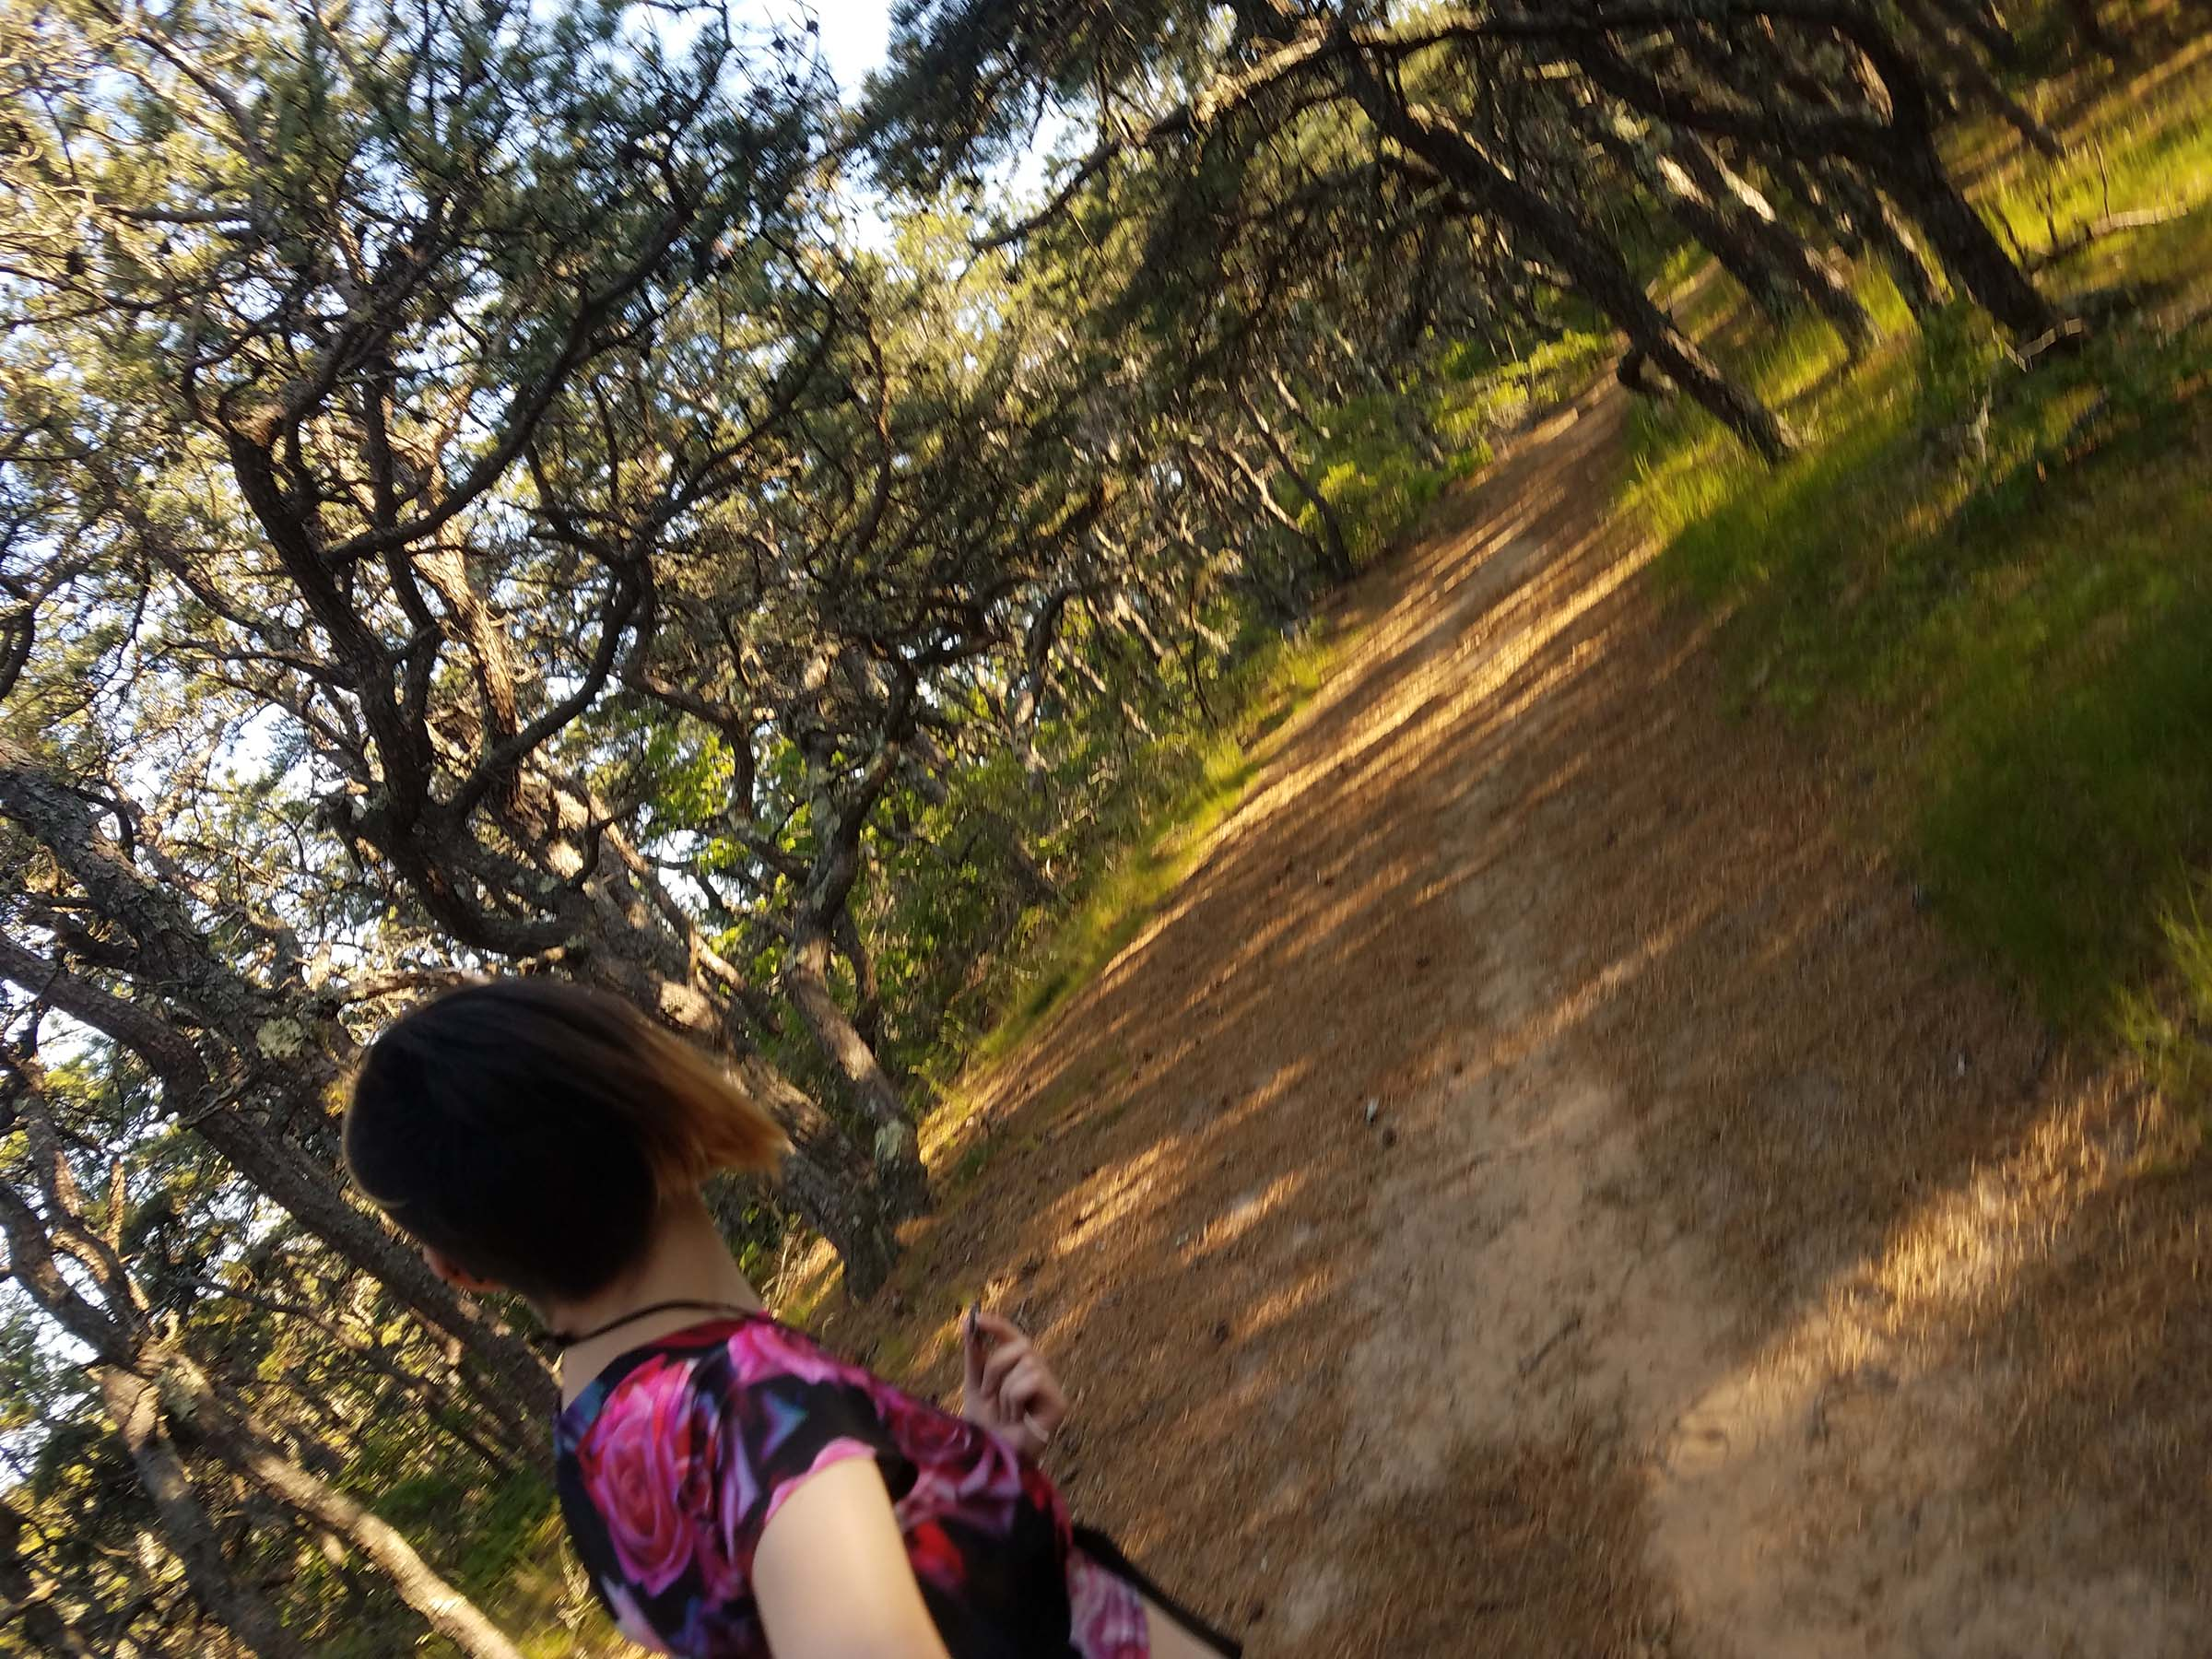 Photo, taken at an angle, looking down a shaded wooded path between twisting pine trees. A person in the foreground looks in the same direction, away from the camera.